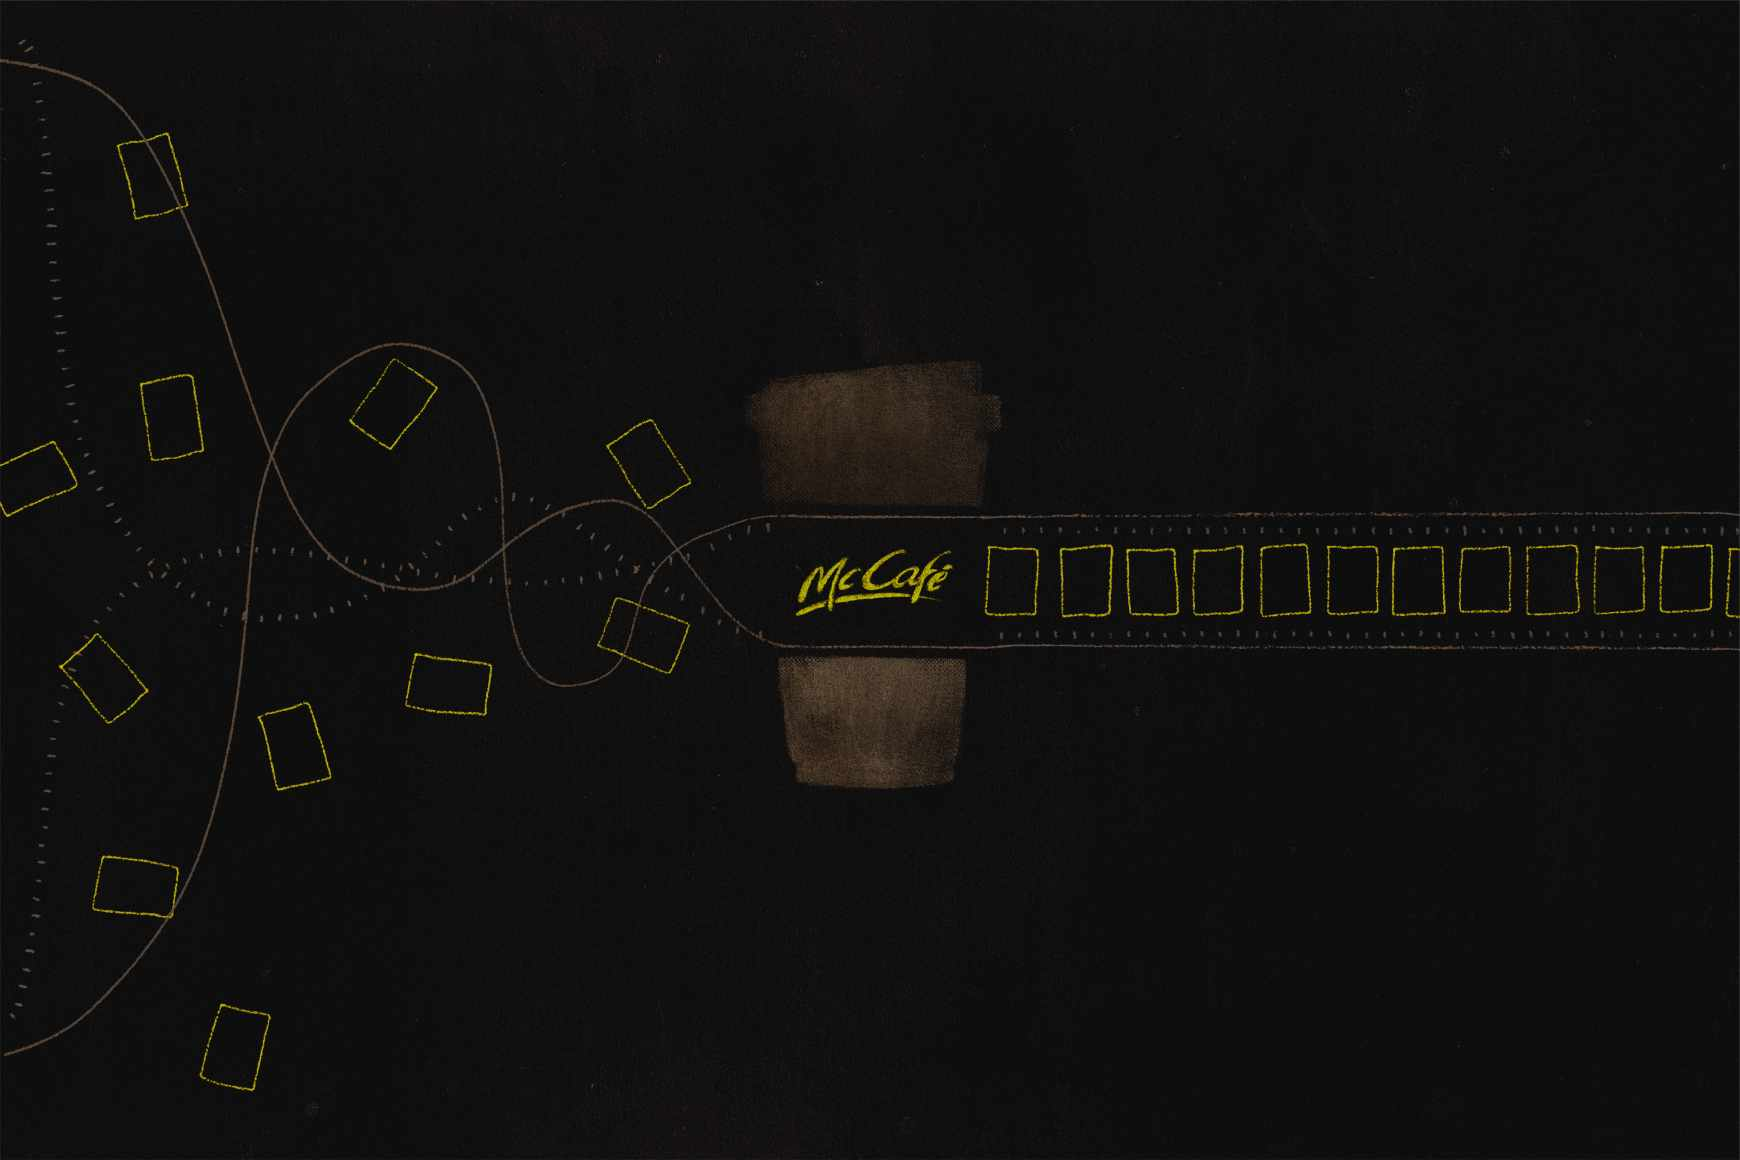 McCafé Print Ad - Think Straight, 2